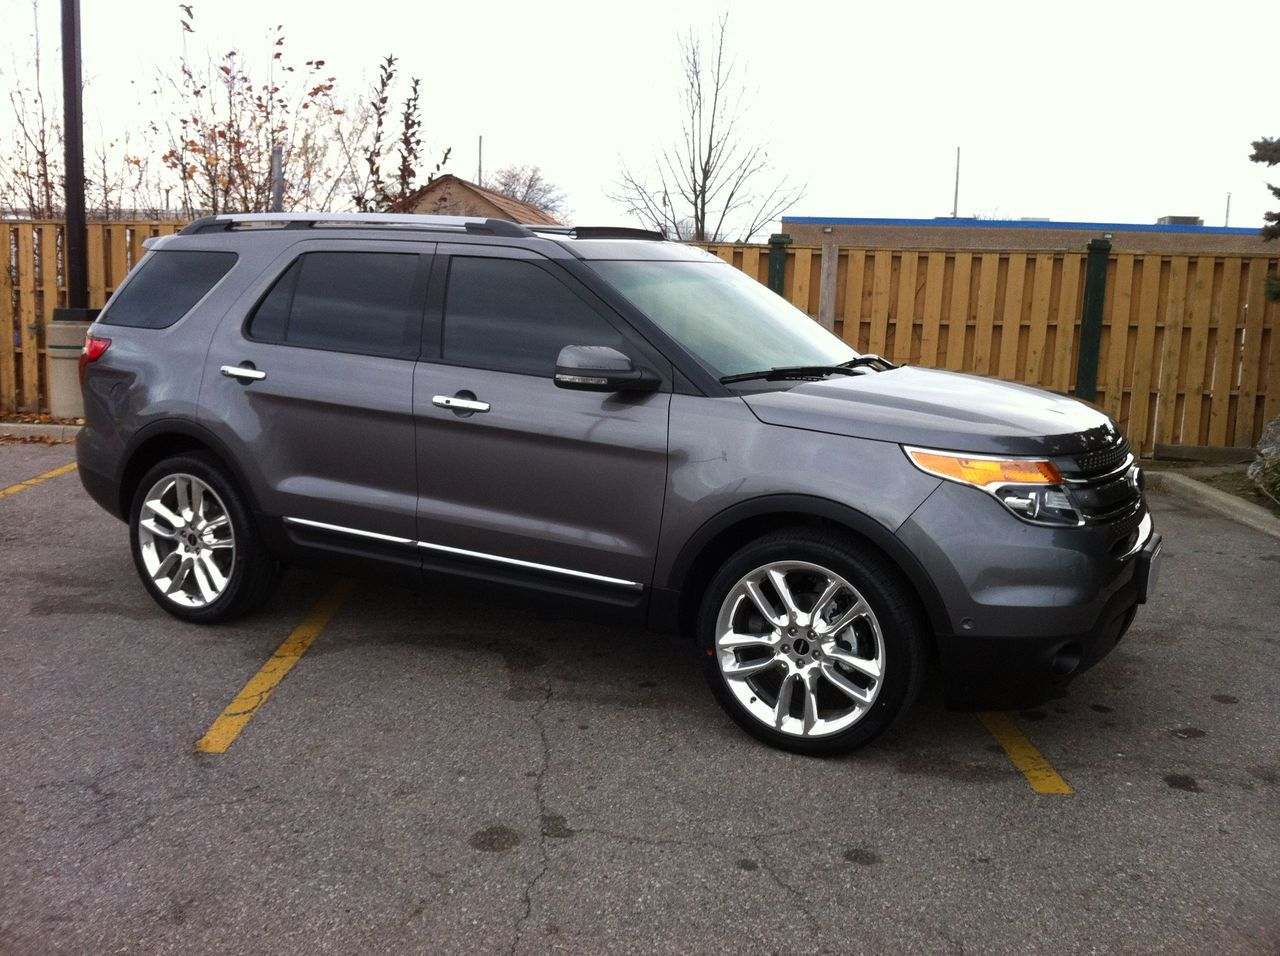 cheap rims for ford explorer Ford explorer, New suv, Suv